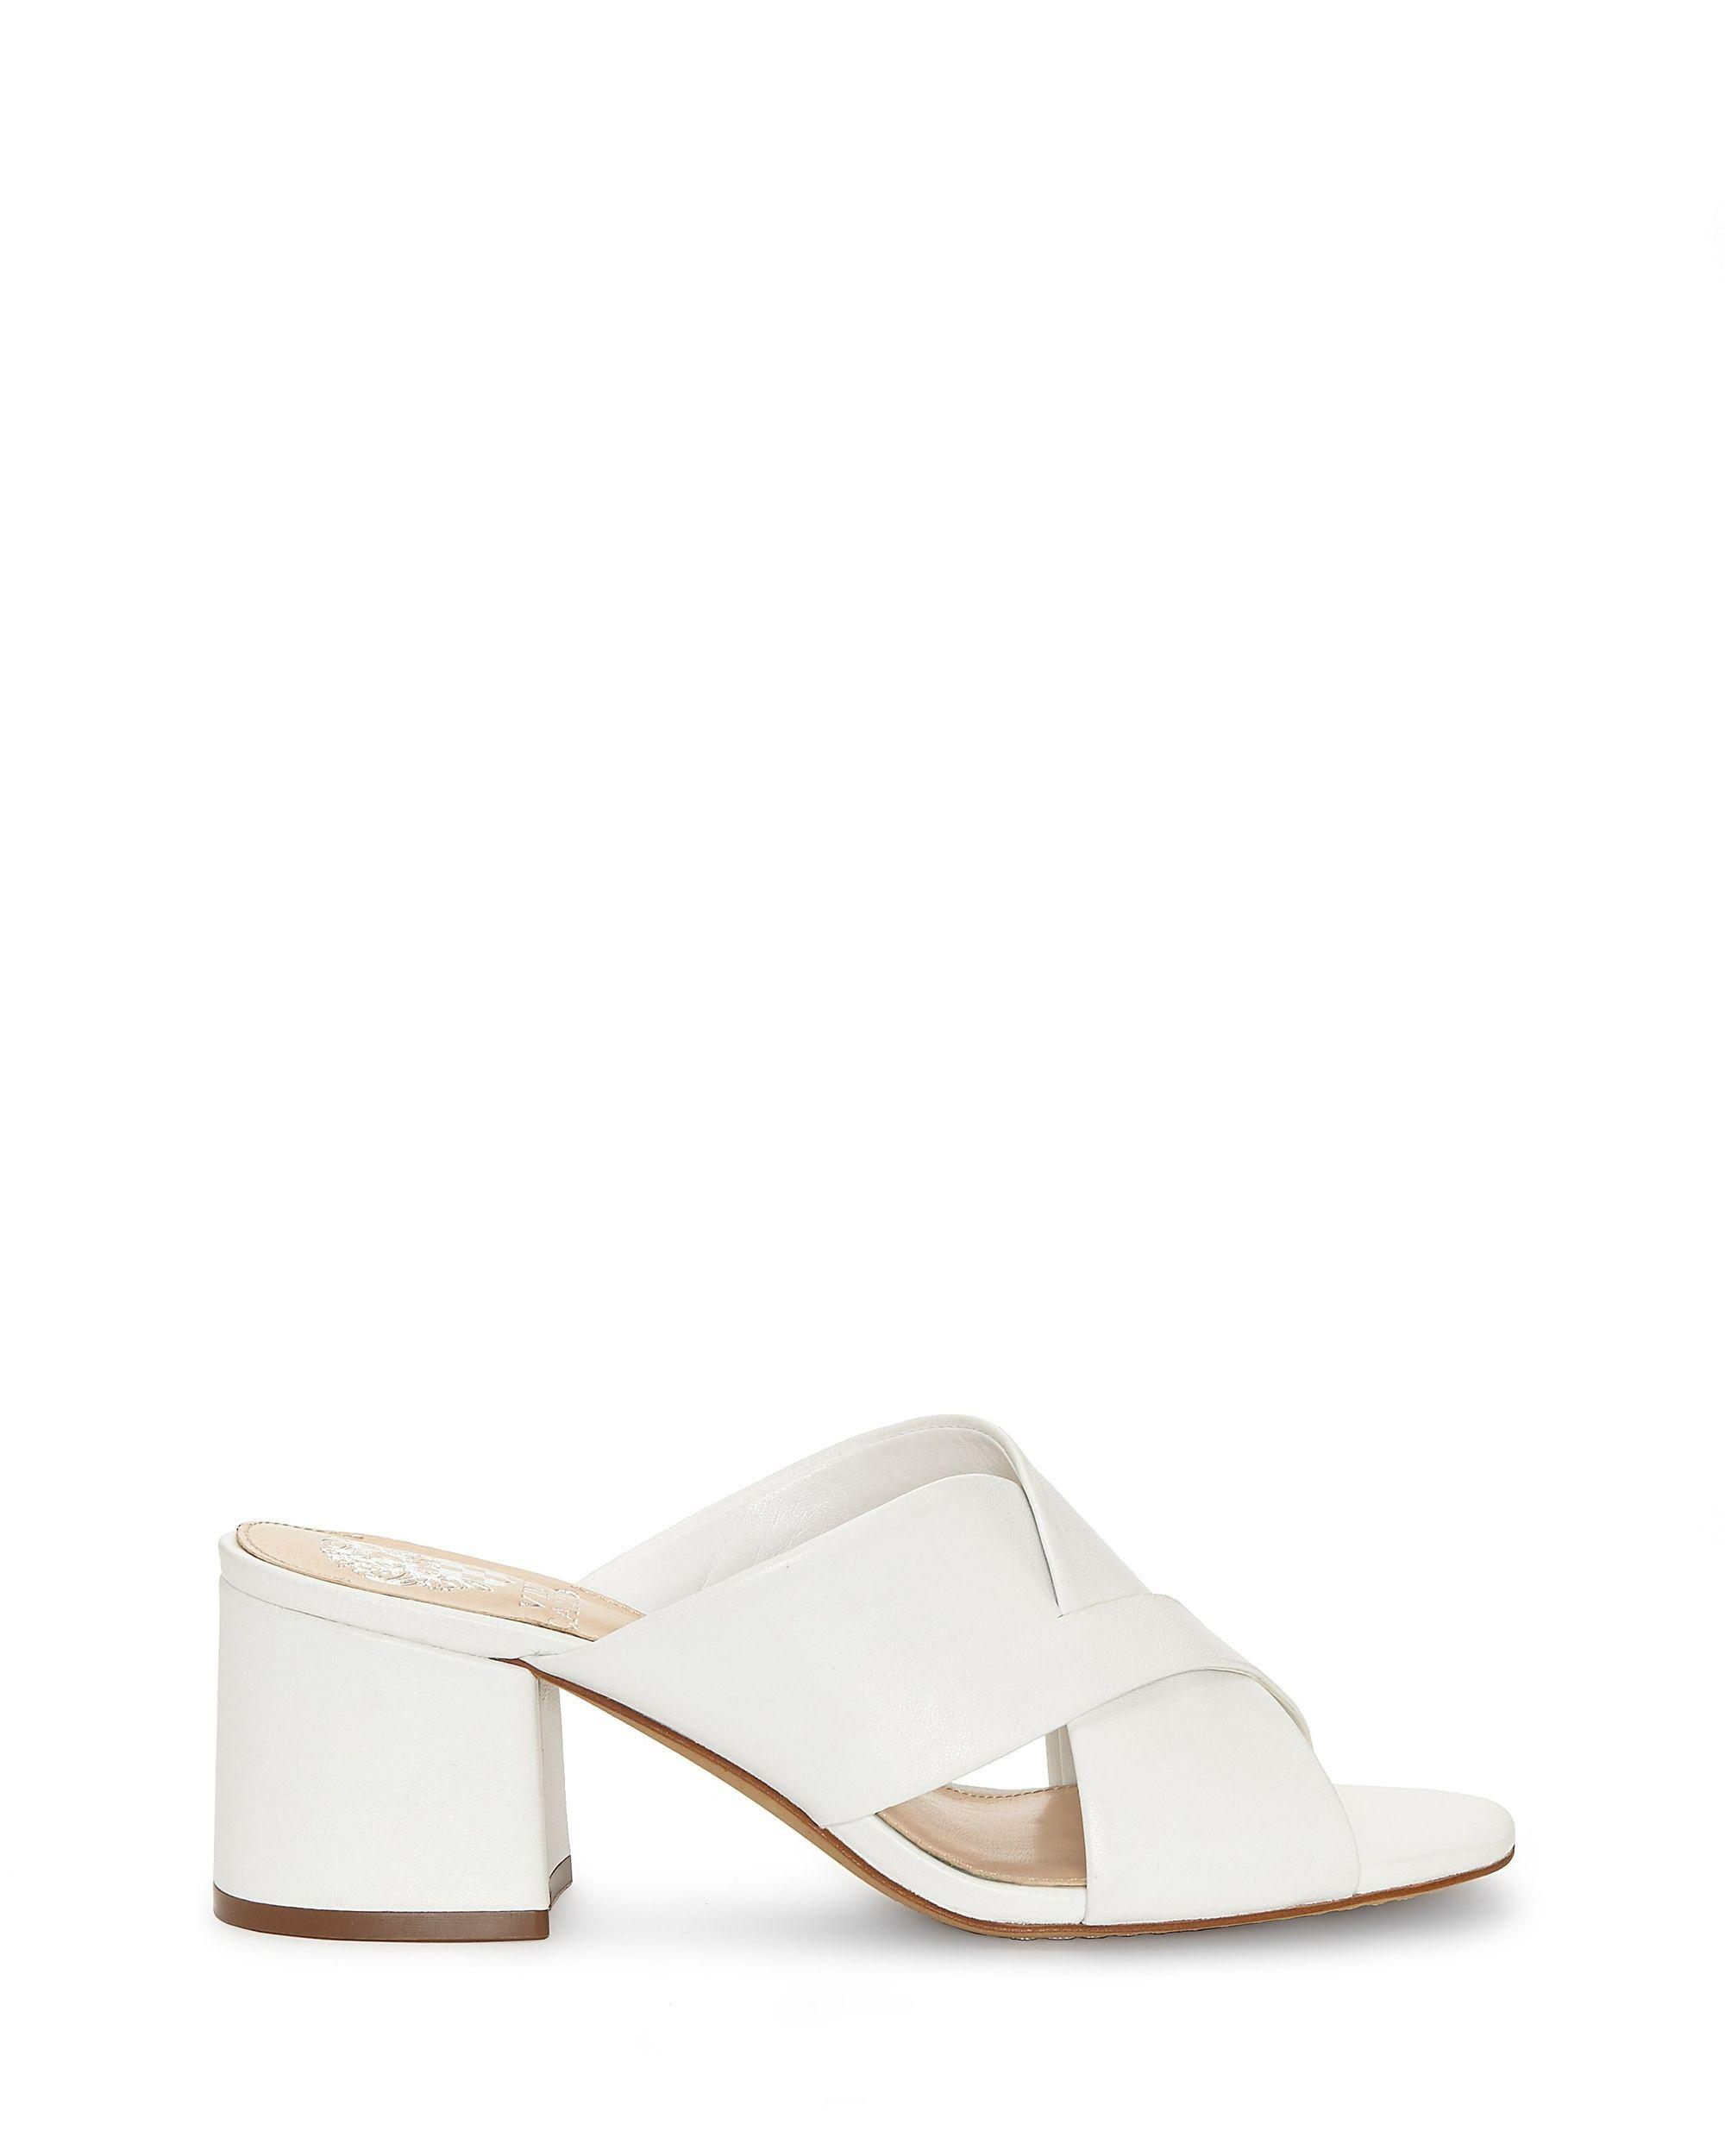 396f61326e0 Lyst - Vince Camuto Stania – Block-heel Mule in White - Save 32%